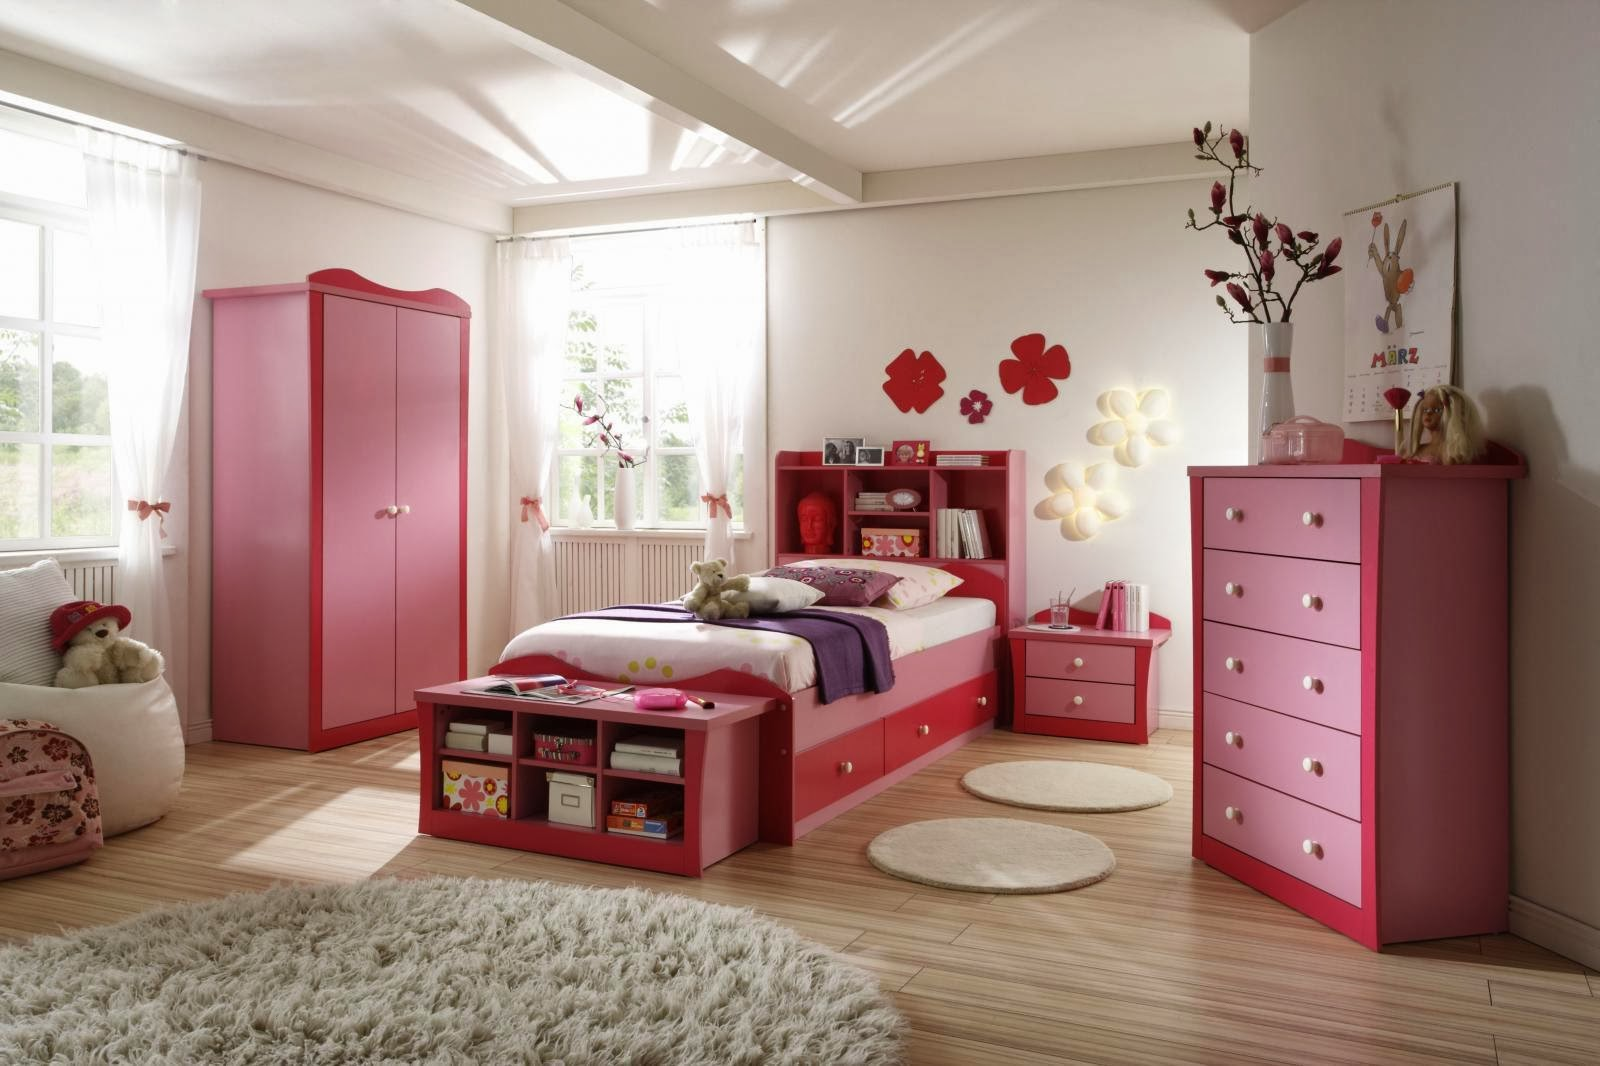 Home Decorating Interior Design Ideas: Pink Bedding for a ... on Girls Bedroom Ideas For Very Small Rooms  id=36155